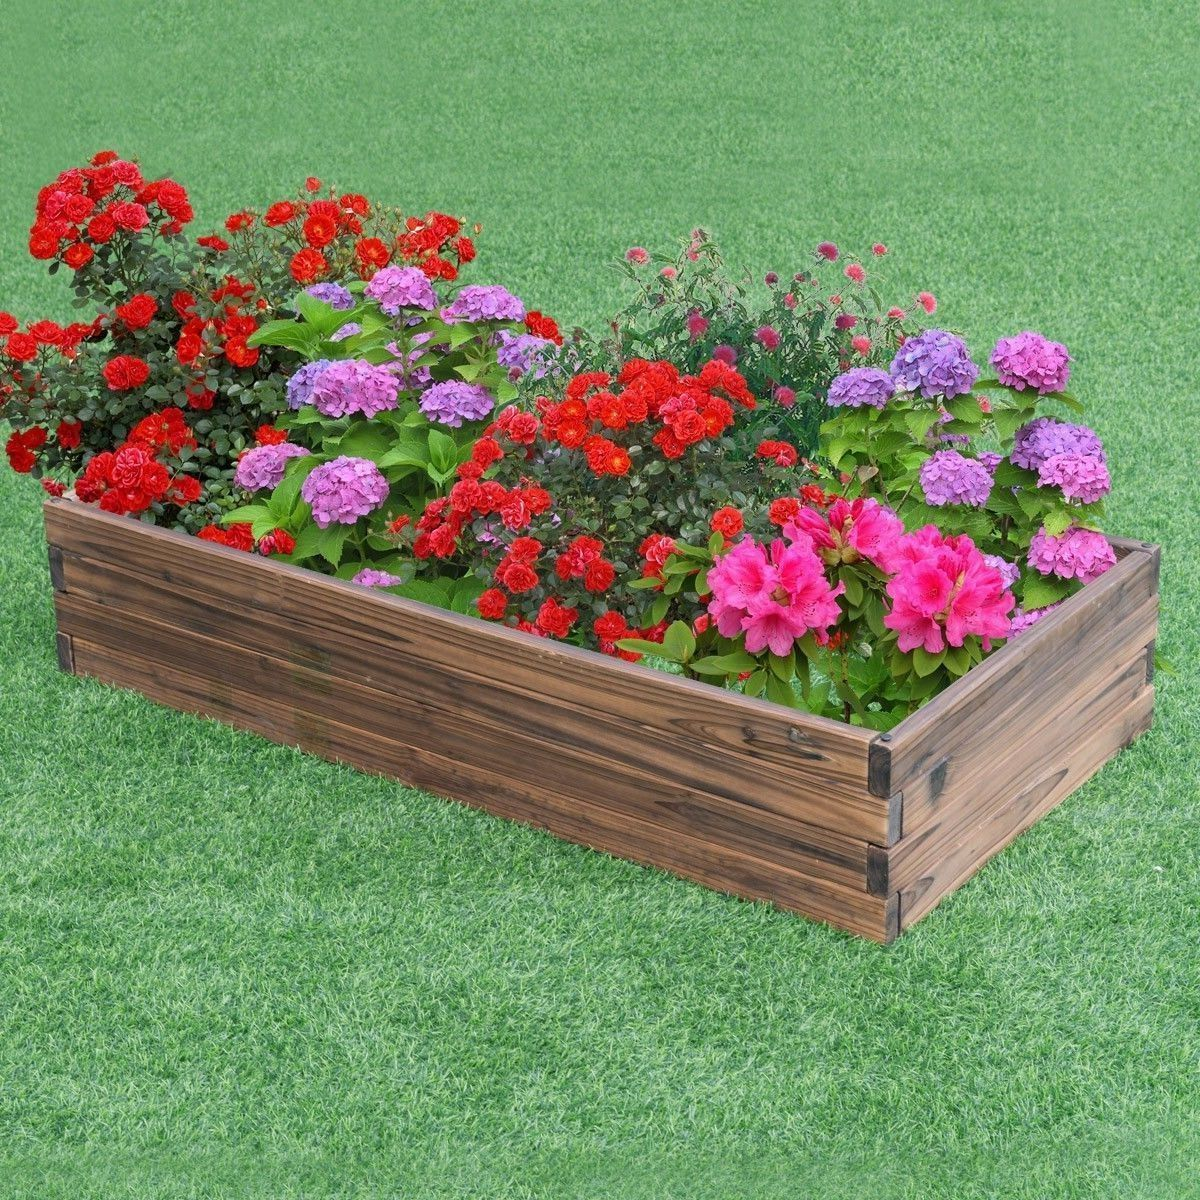 Garden patio wooden raised elevated planter box bed frame